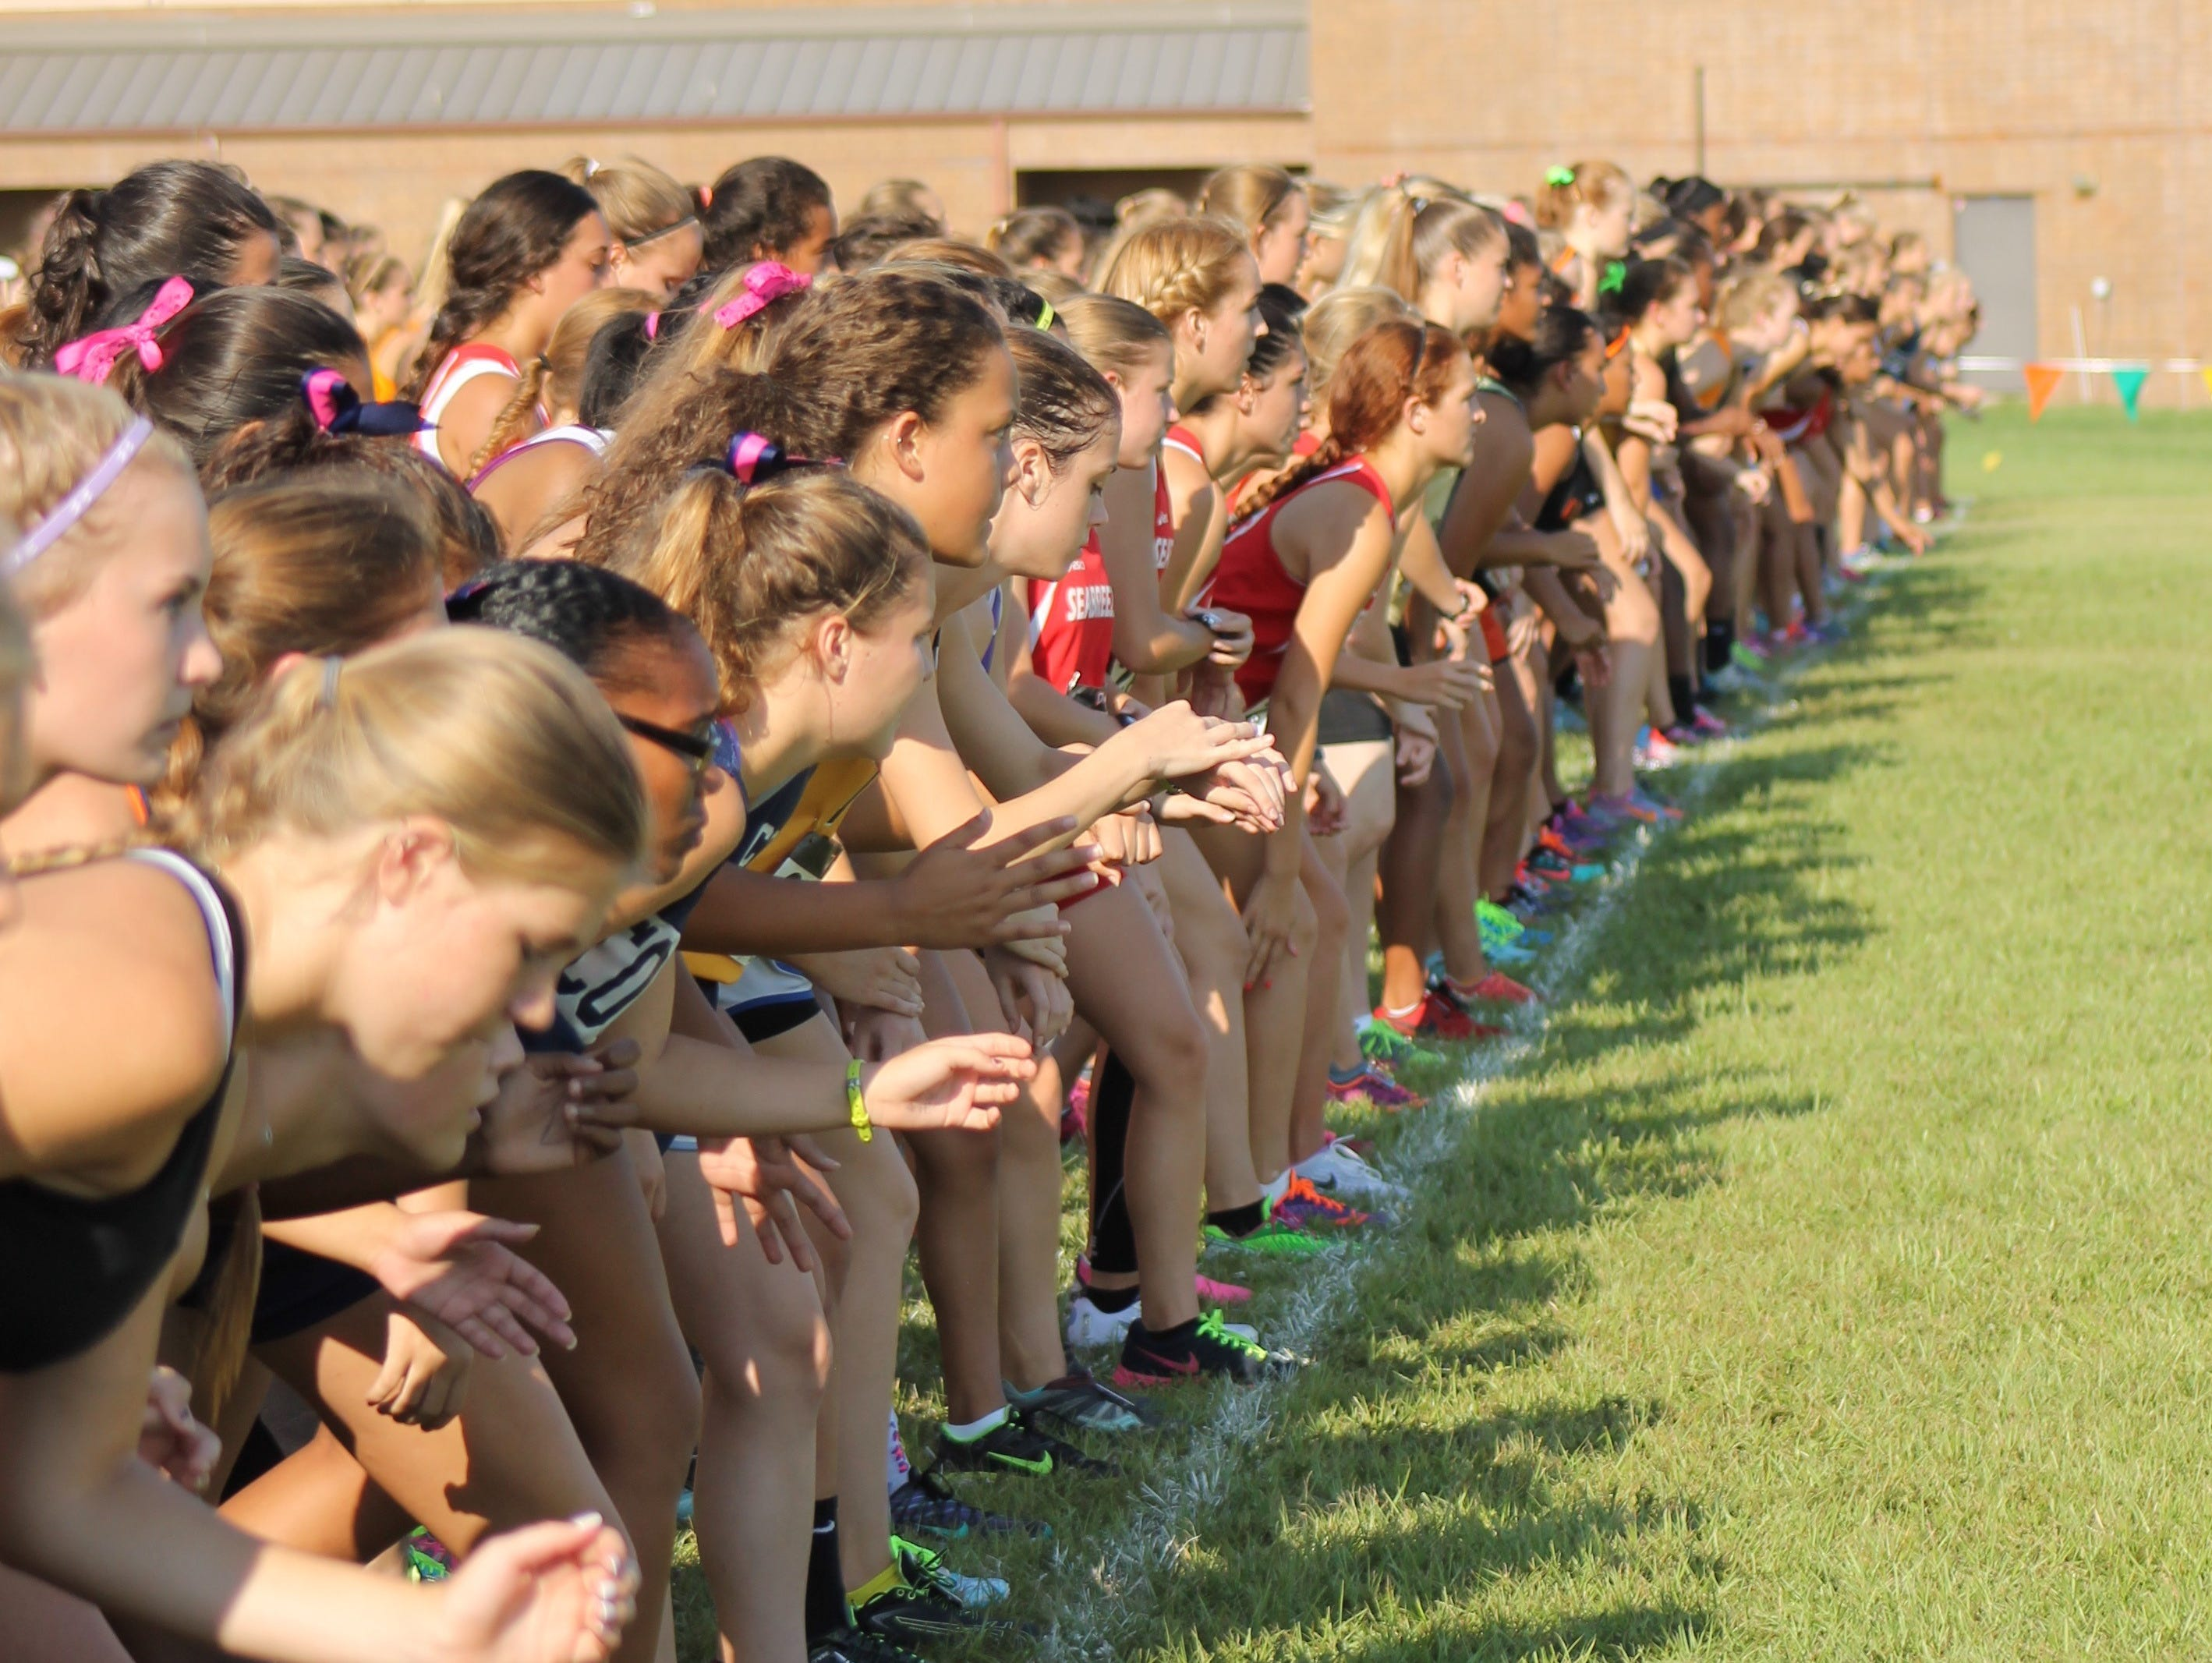 JV girls cross country runners are set and ready at the starting line at the Astronaut Invitational at Chain of Lakes Park in Titusville on Saturday.